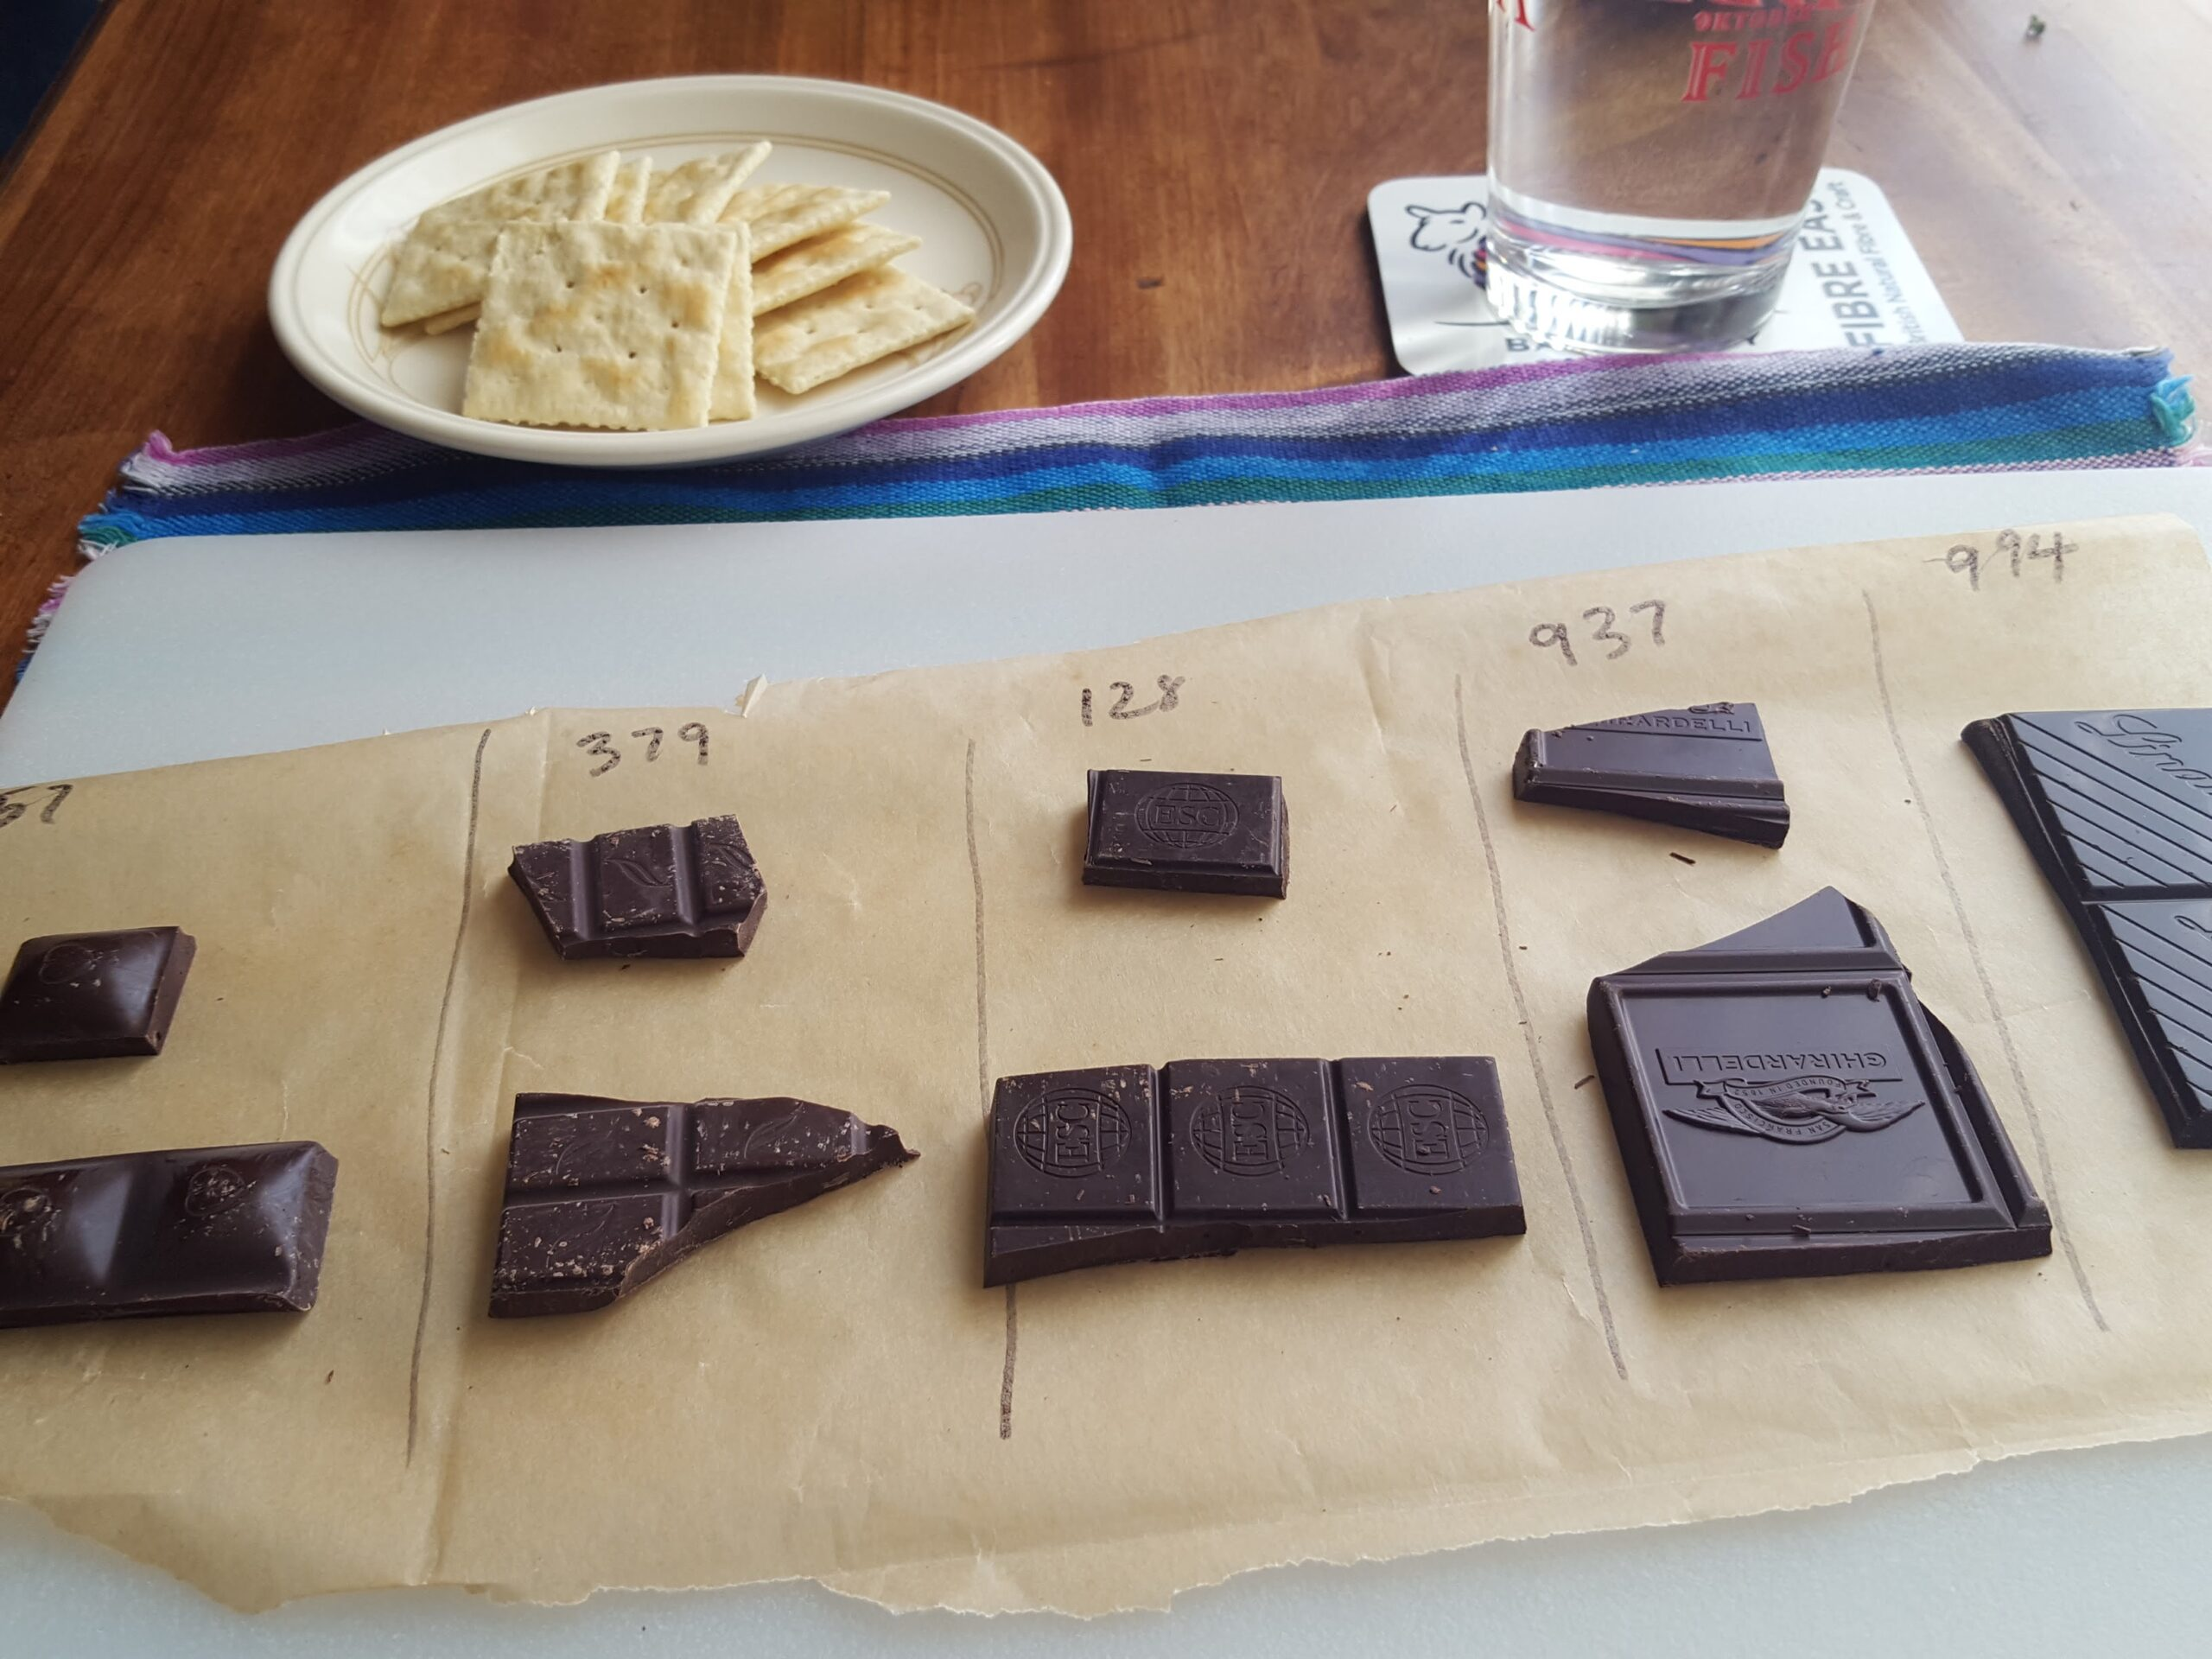 My set up for chocolate tasting with chocolates on parchment paper labeled with numbers, a glass of water and a plate with saltine crackers.